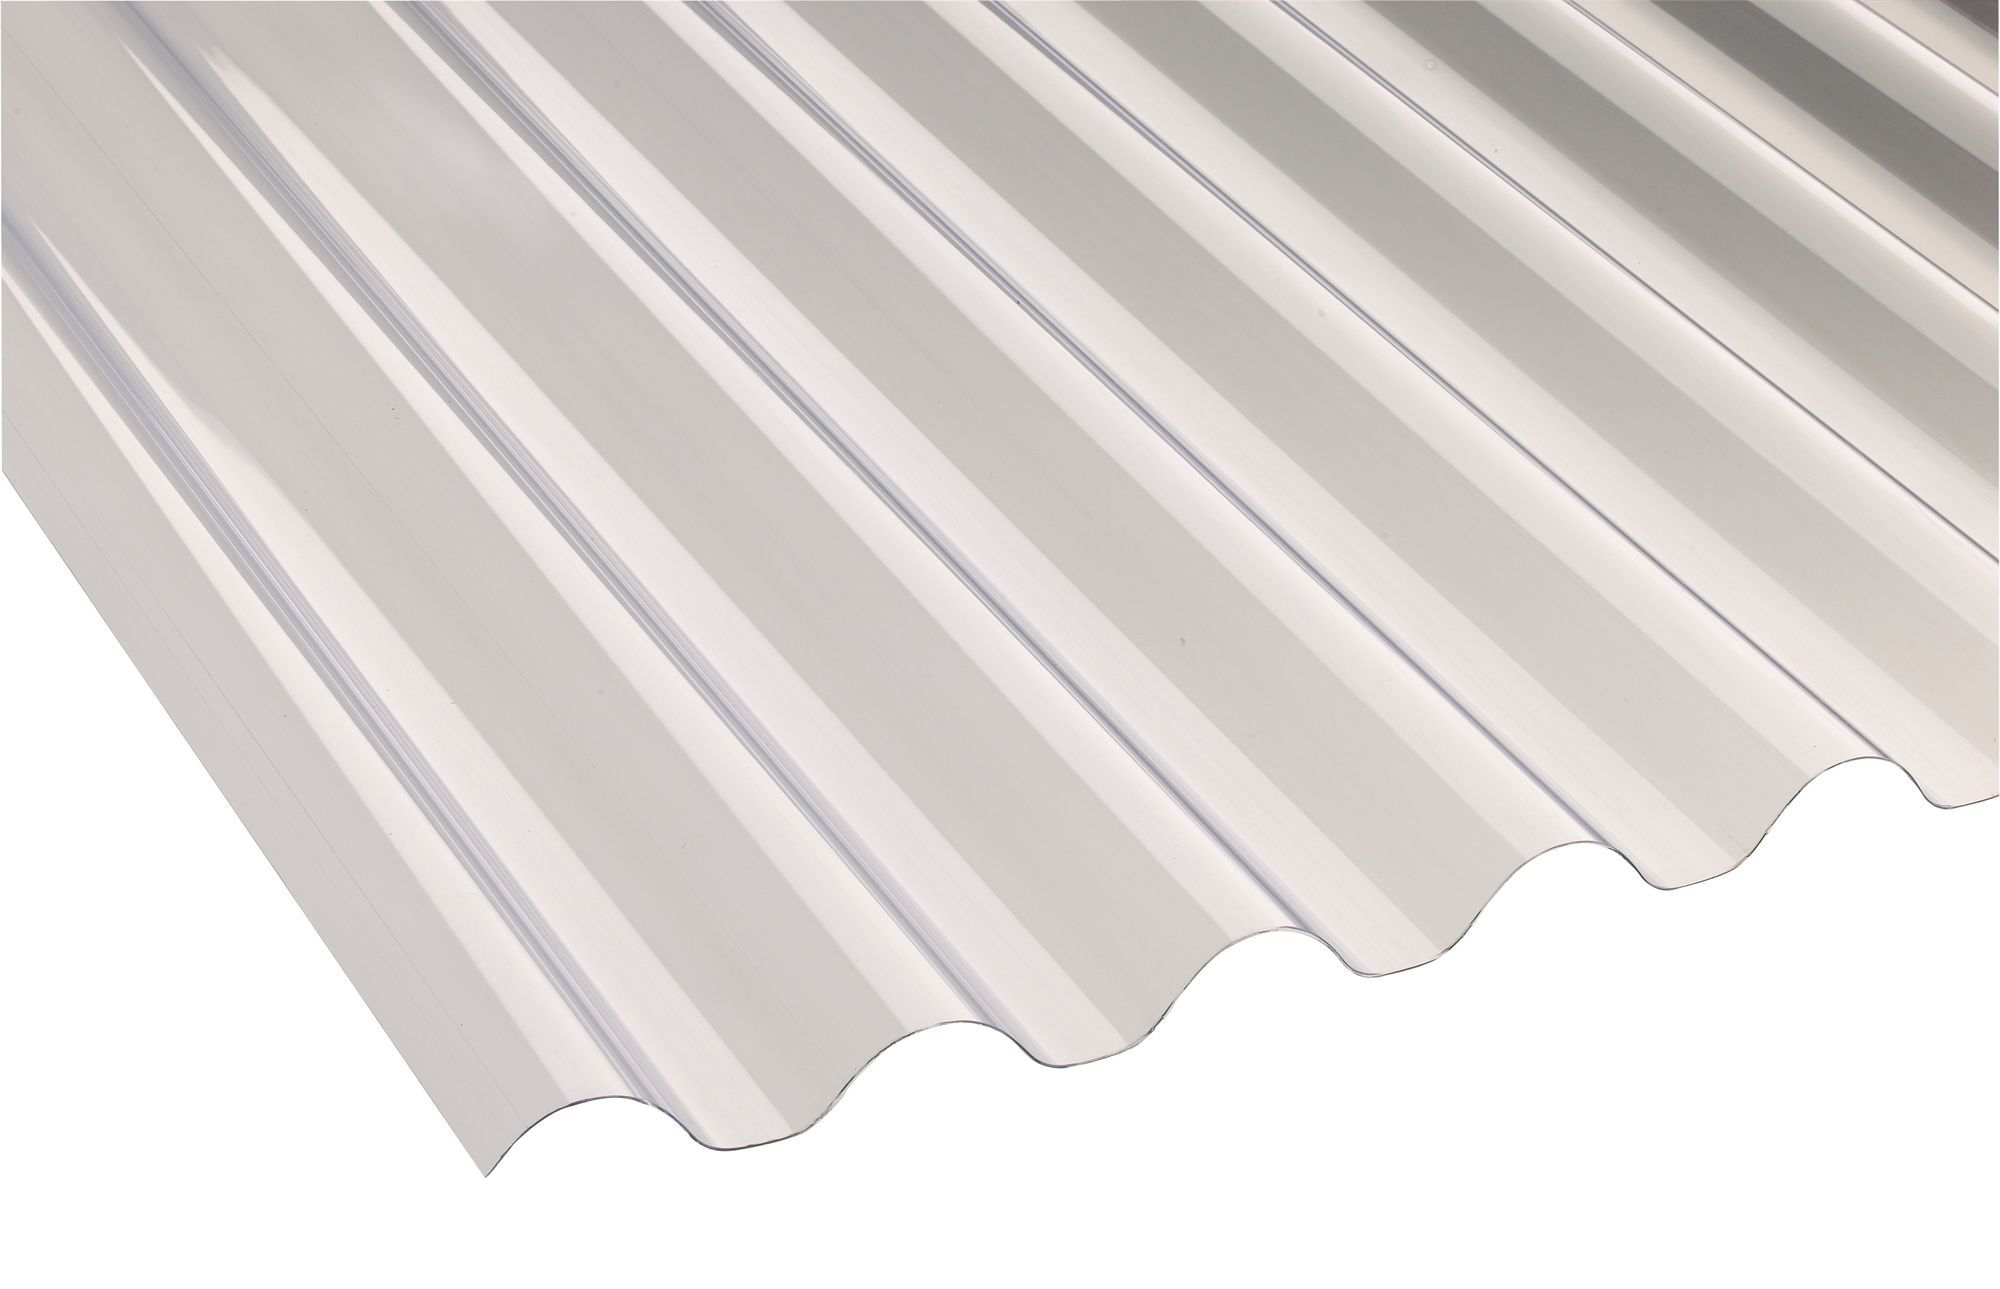 Corrugated Plastic Panels : Translucent pvc roofing sheet m mm departments